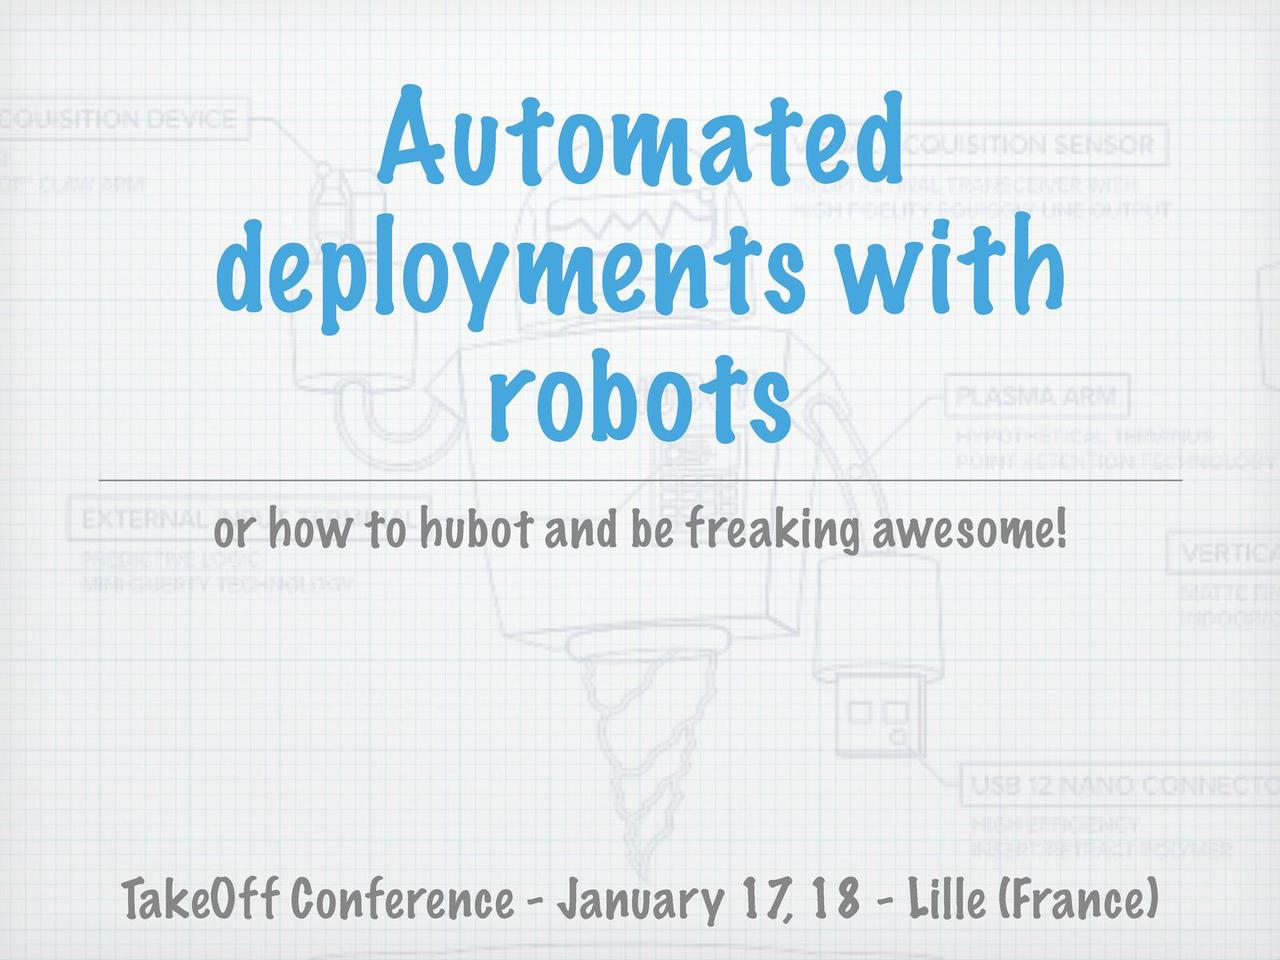 Automated deployments with robots